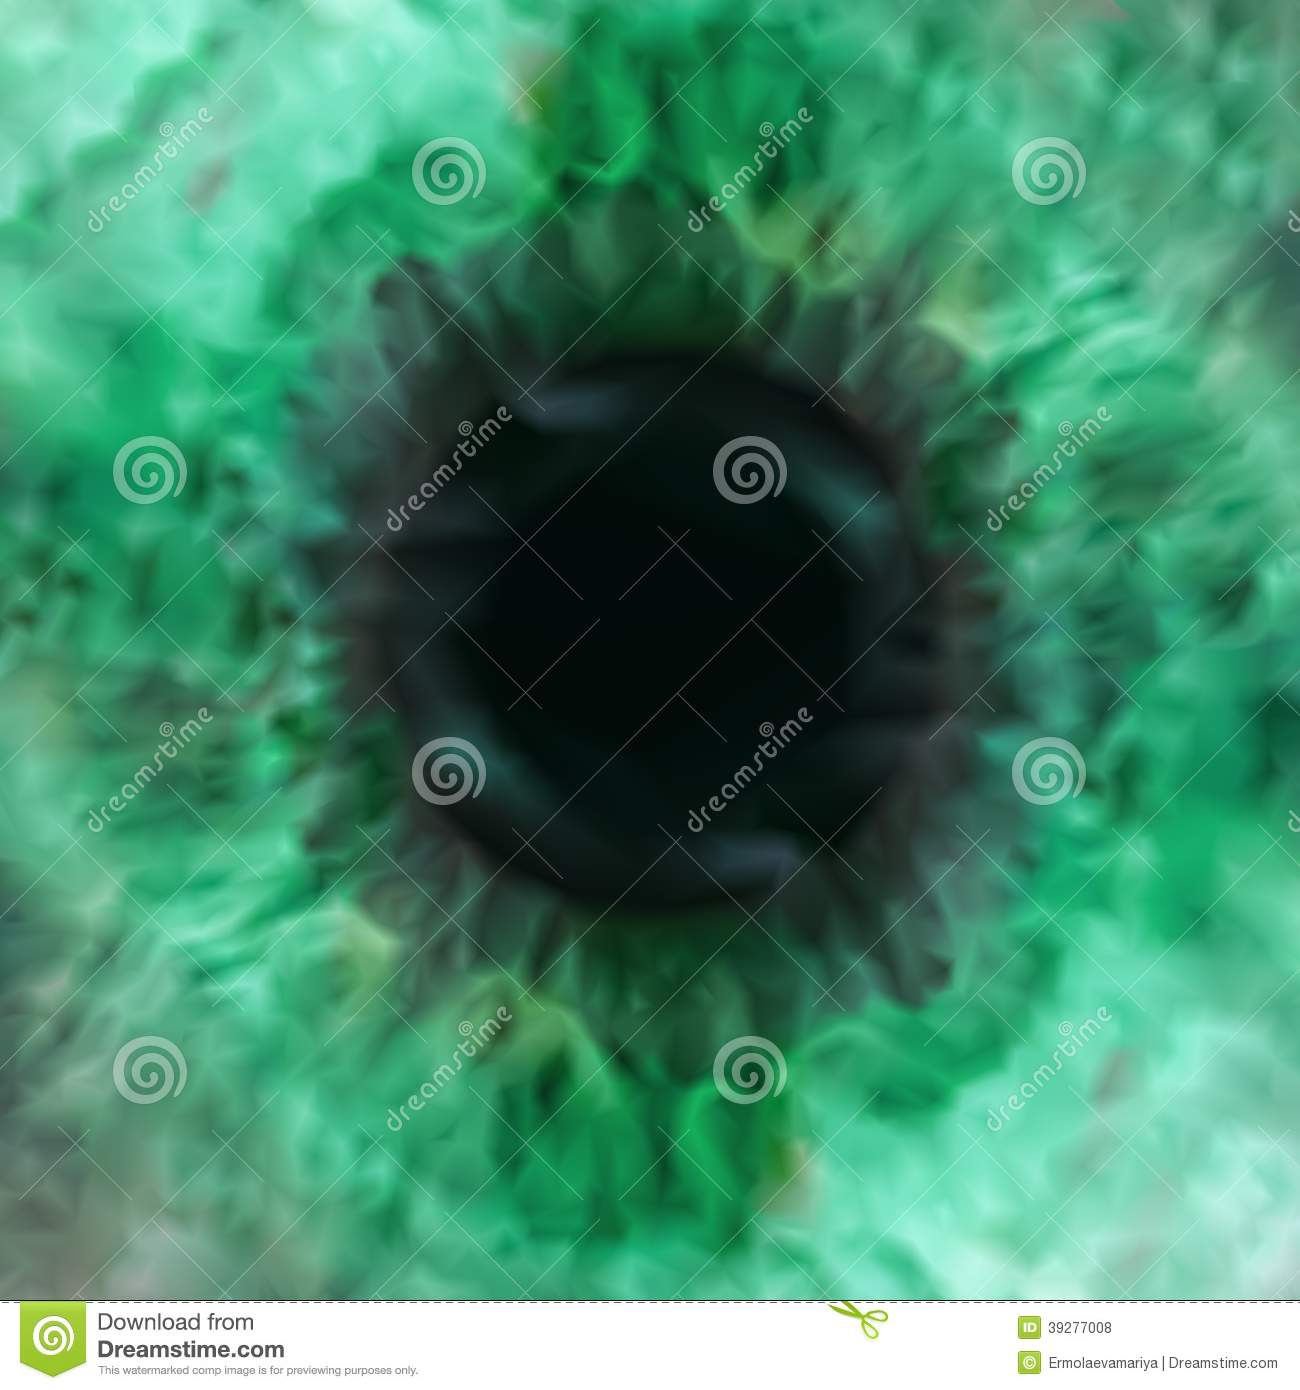 Vector Texture Of Green Eye Pupil Stock Vector - Image ...